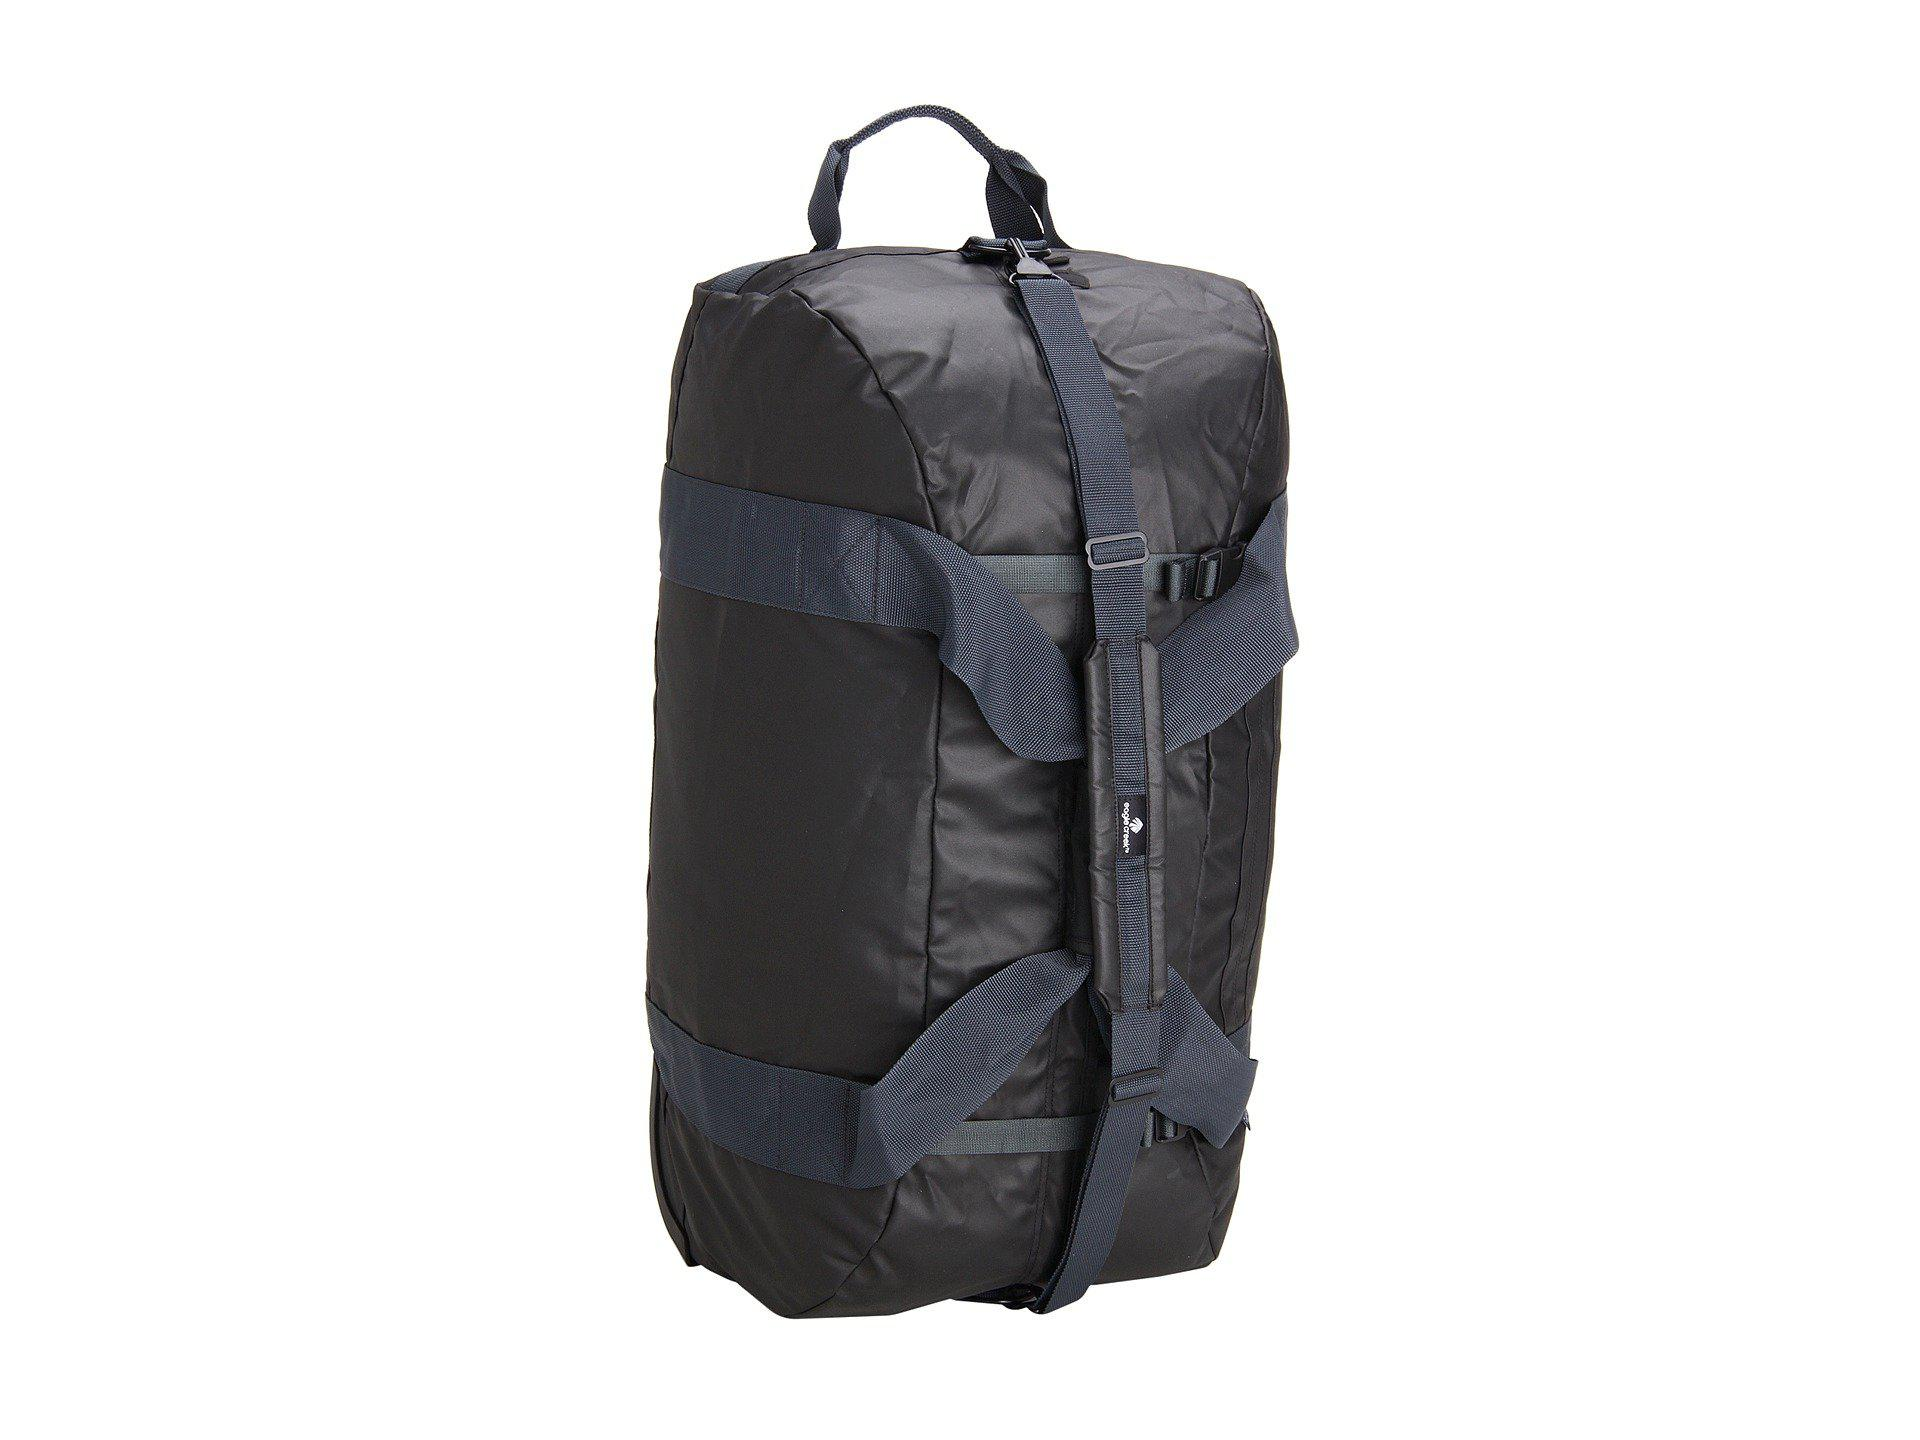 Lyst - Eagle Creek No Matter What Flashpoint Rolling Duffel L (black ... f38e9dcd7dea2